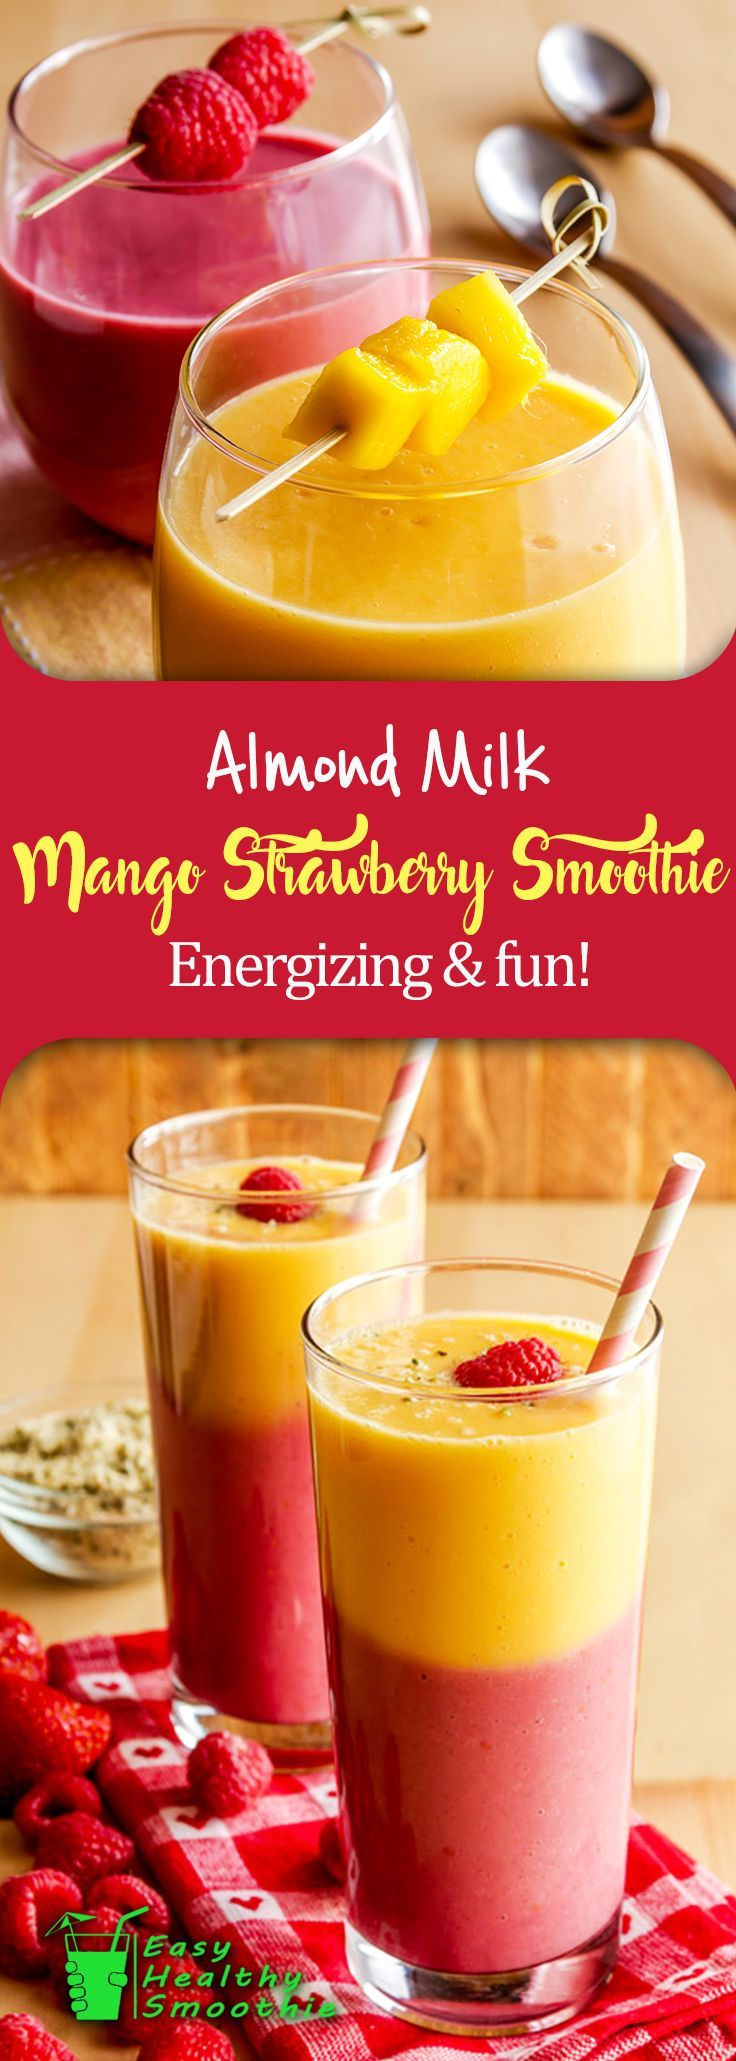 If you're looking for a great smoothie to start your day and you would like something that gives you a great energy boost, this is the smoothie for you.  The zest of the lime and ginger and the sweet of the fruit will have you ready to face the day | Mango Strawberry Almond Milk Smoothie